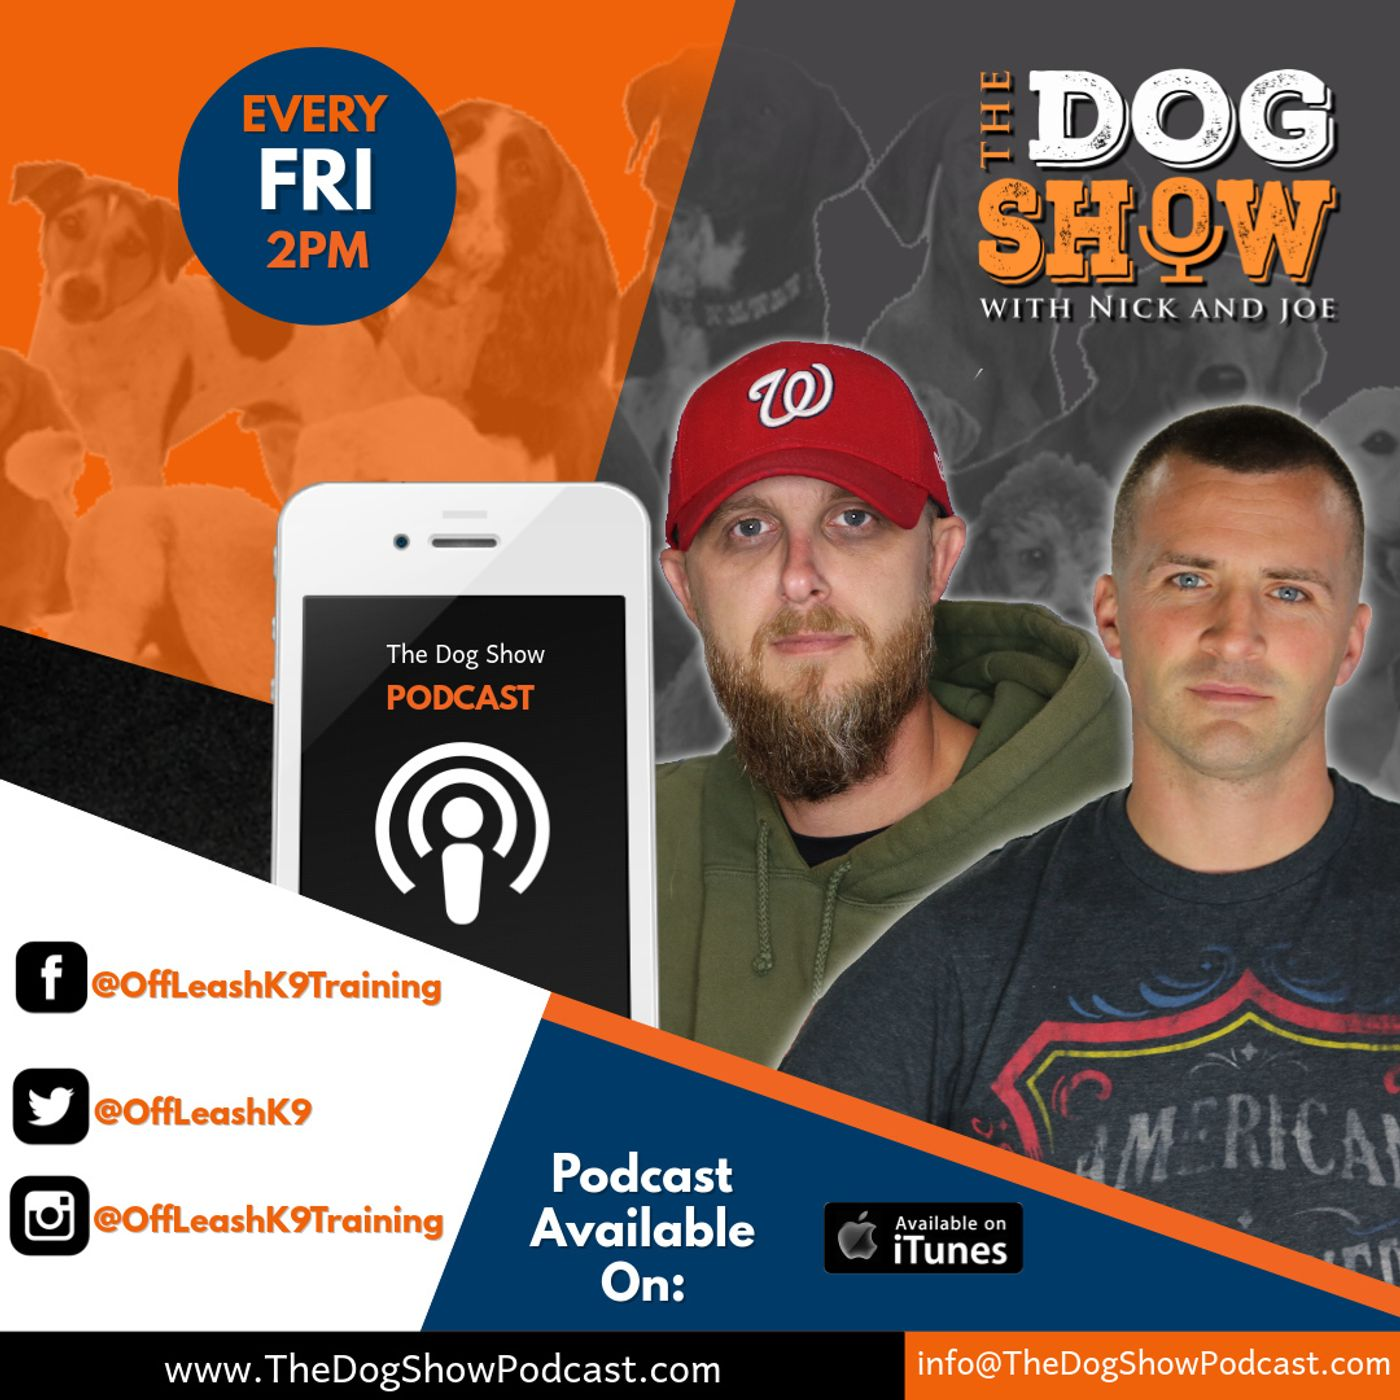 The Dog Show with Nick and Joe - Episode 8